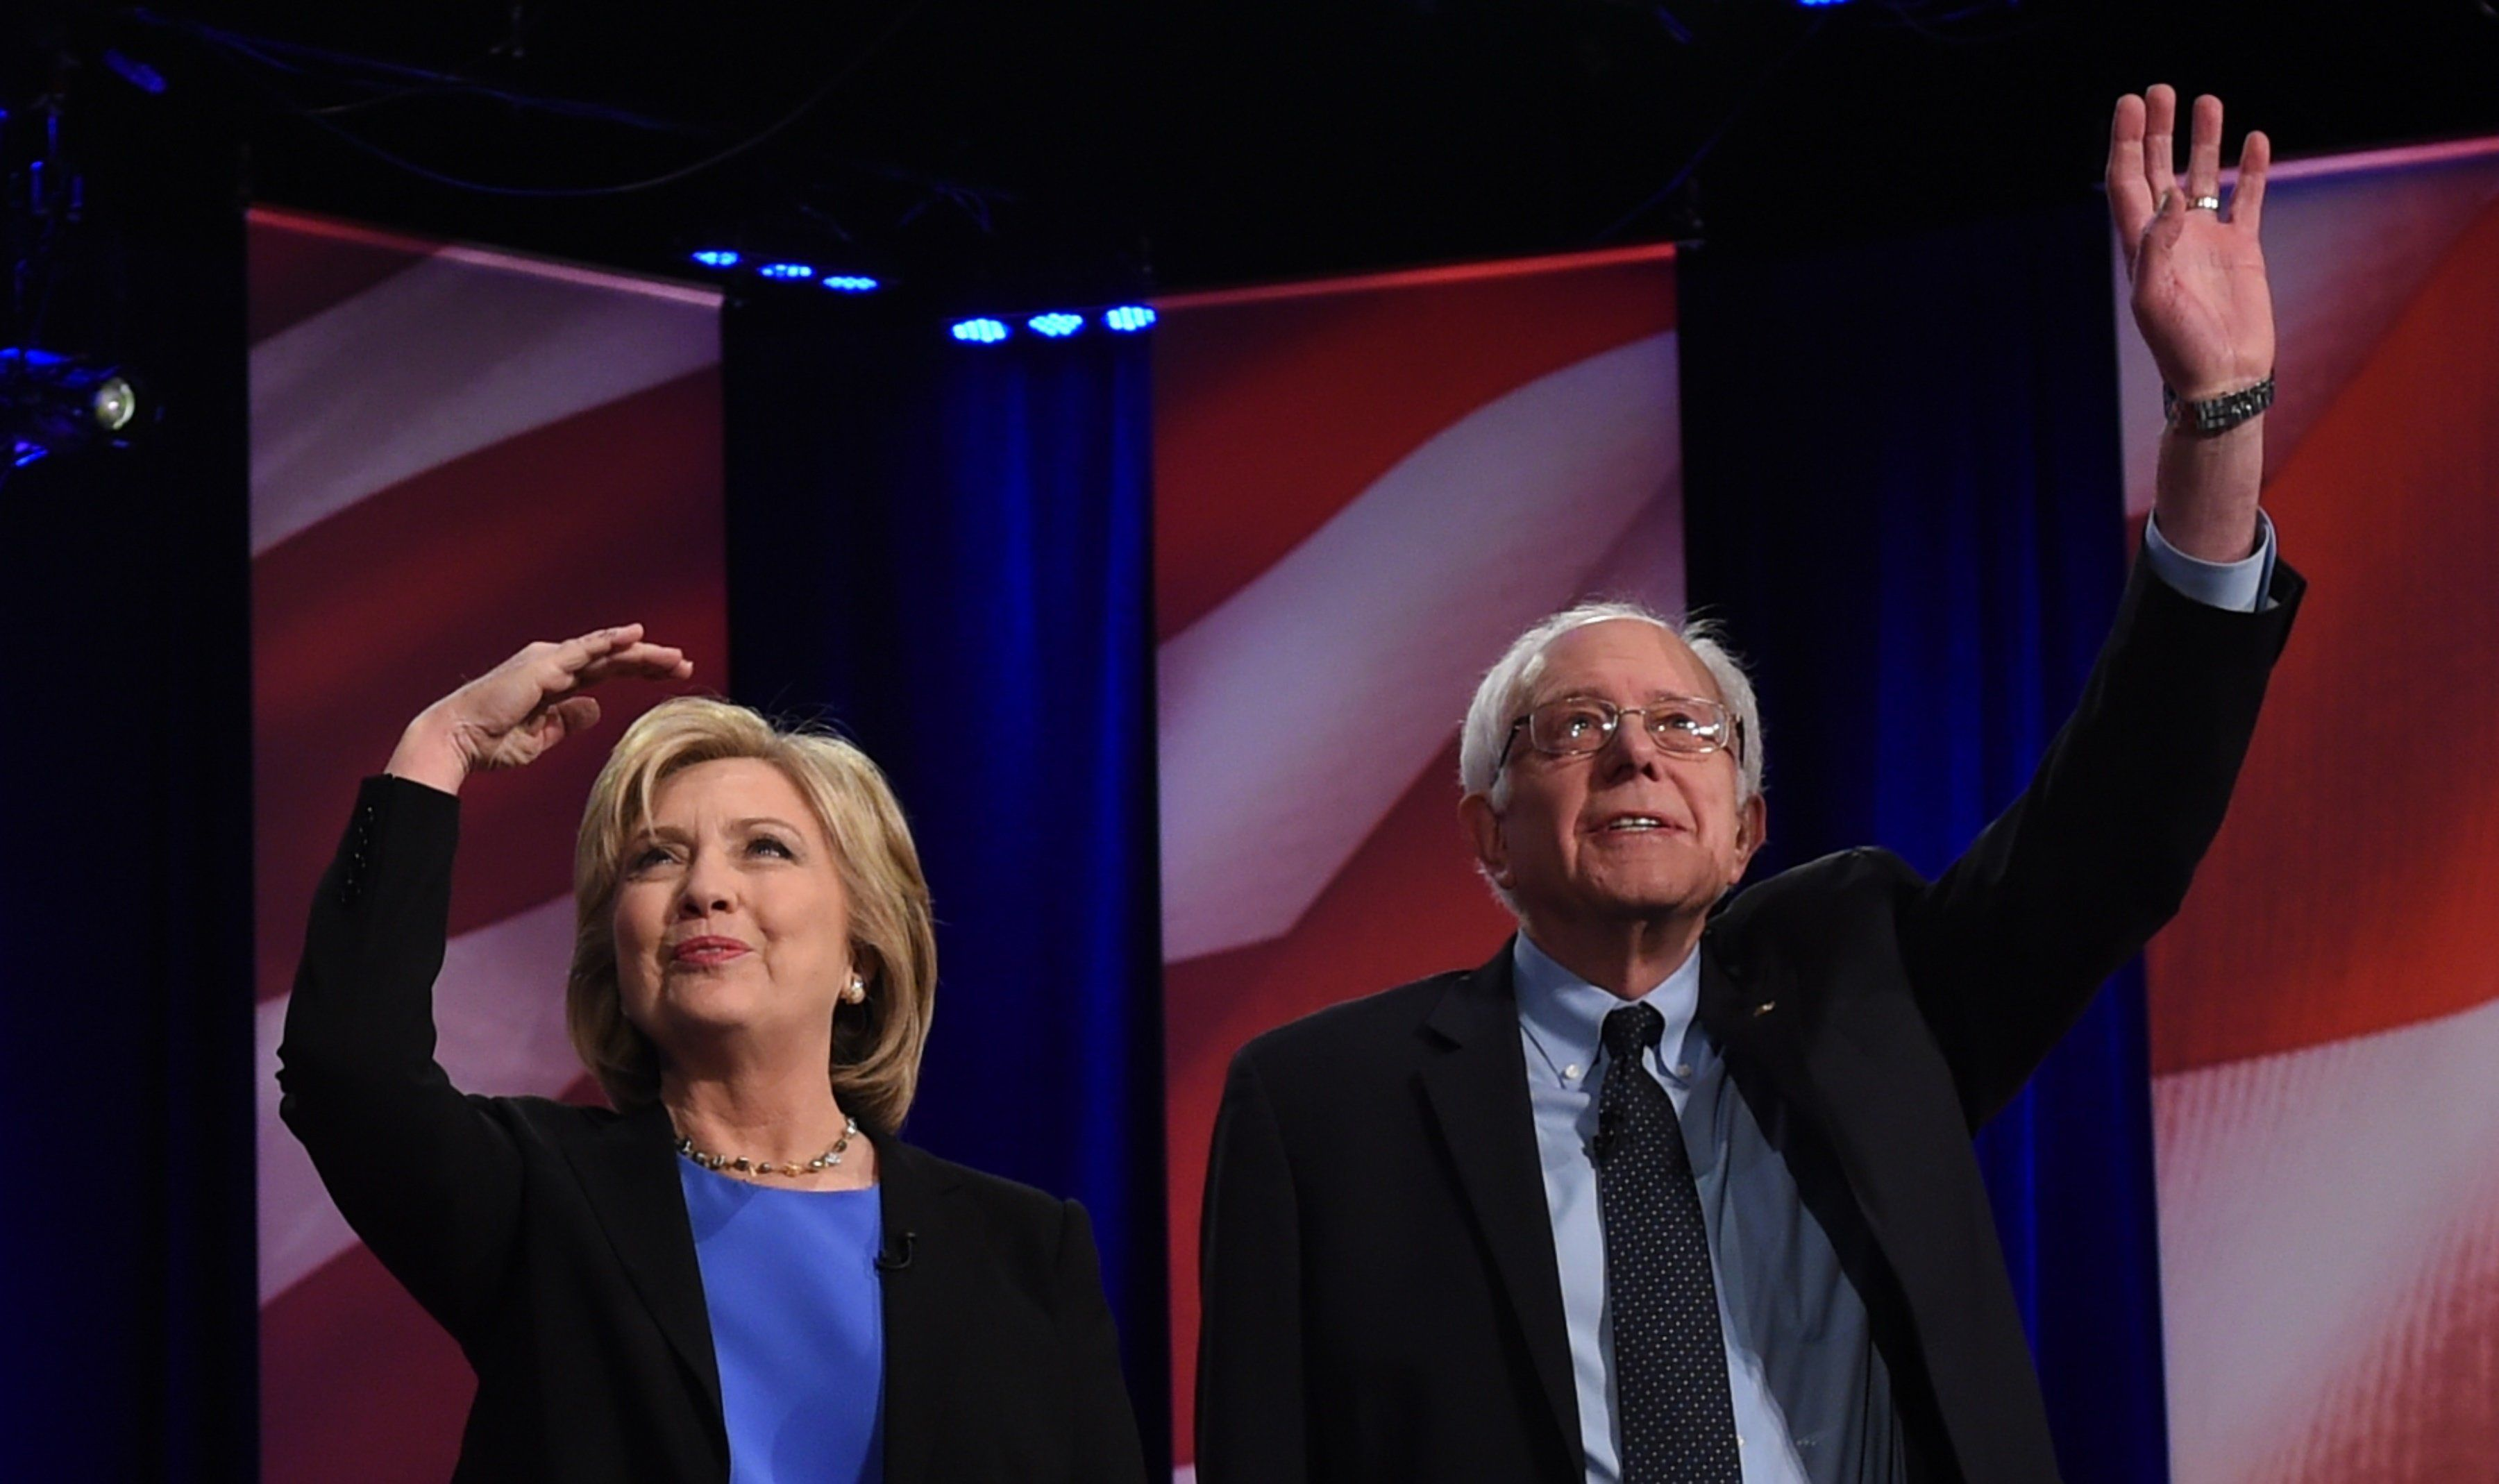 Bernie Sanders is averaging 45.5 percent support compared to Hillary Clinton's 46.1 percent.